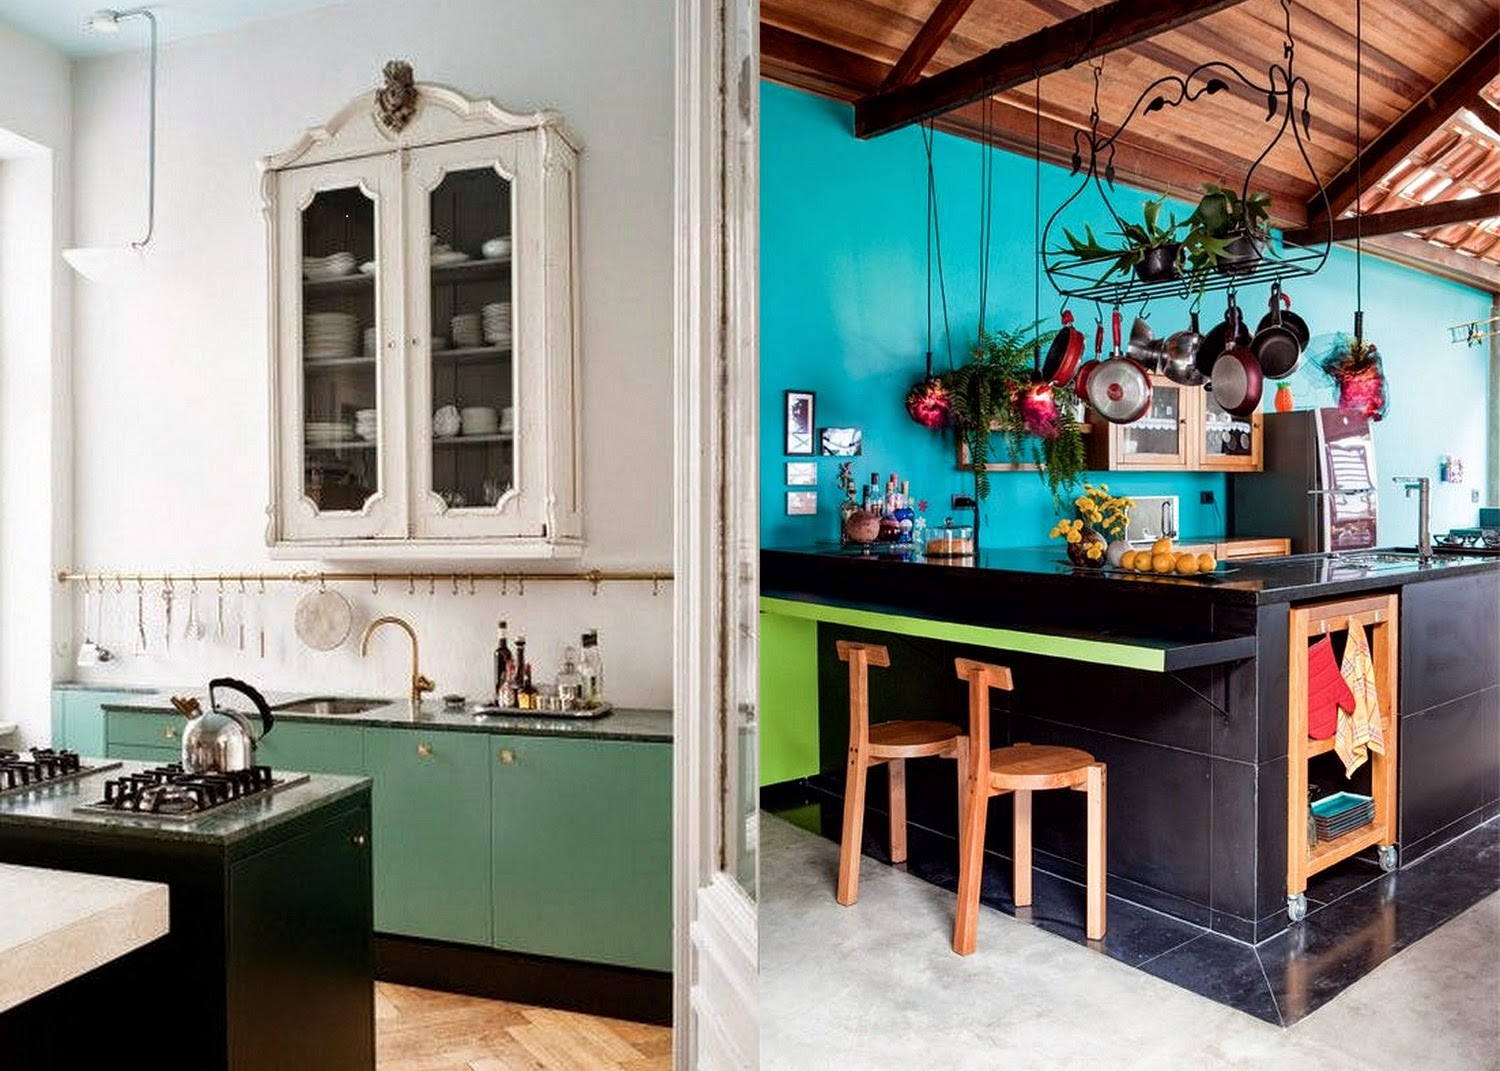 GYPSY YAYA: The Modern Bohemian Black Kitchen